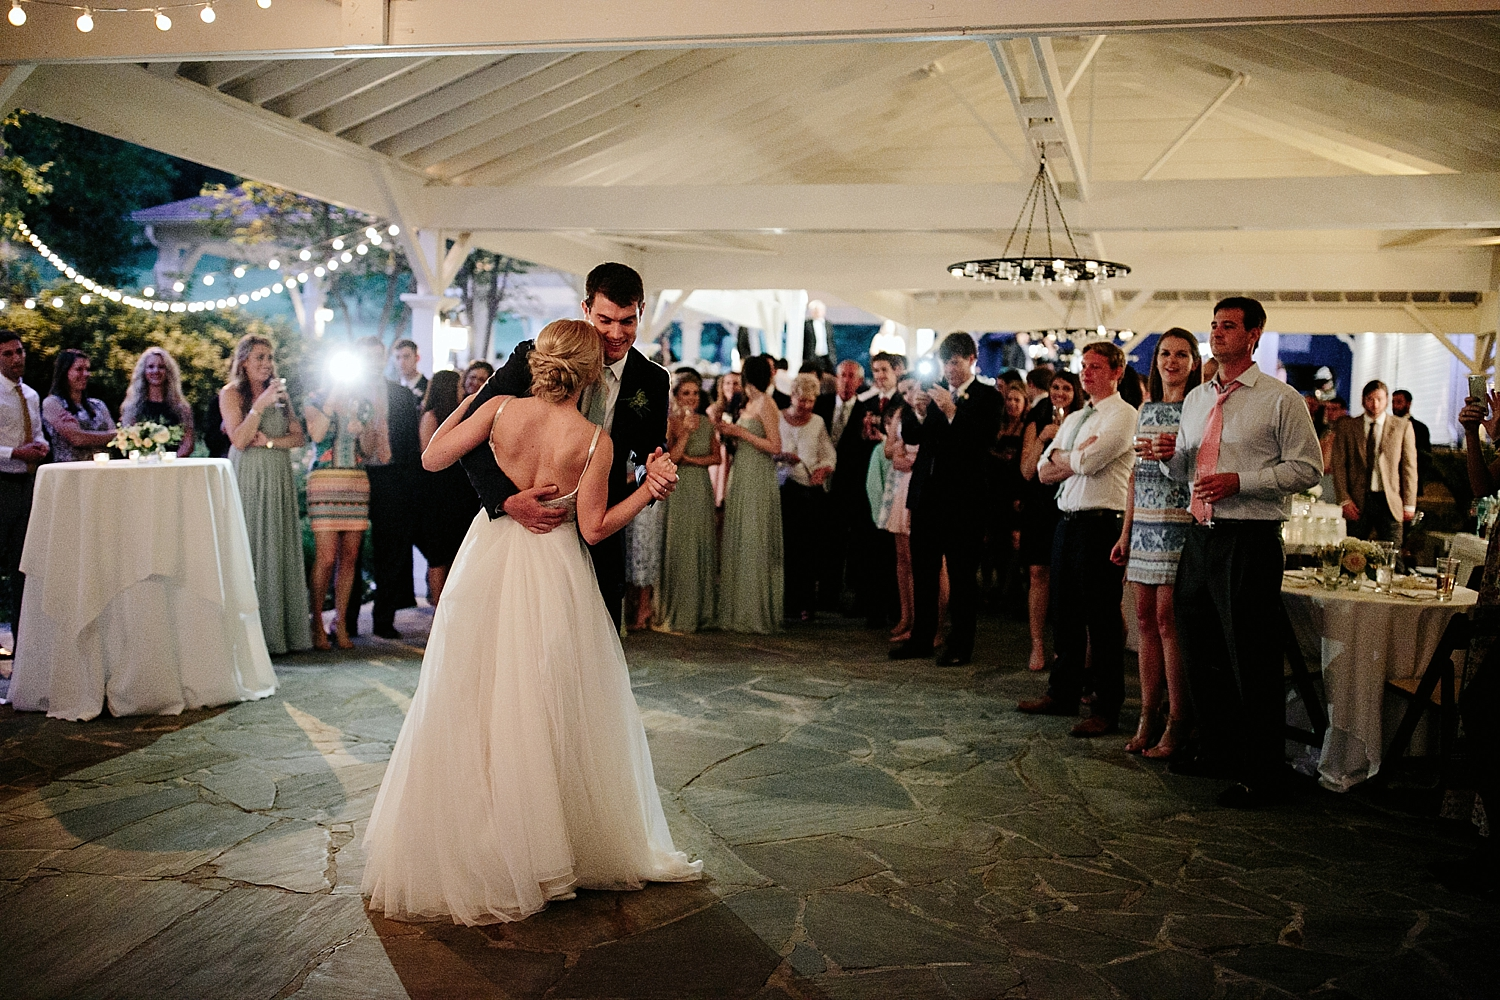 bride and groom dancing while guests watch